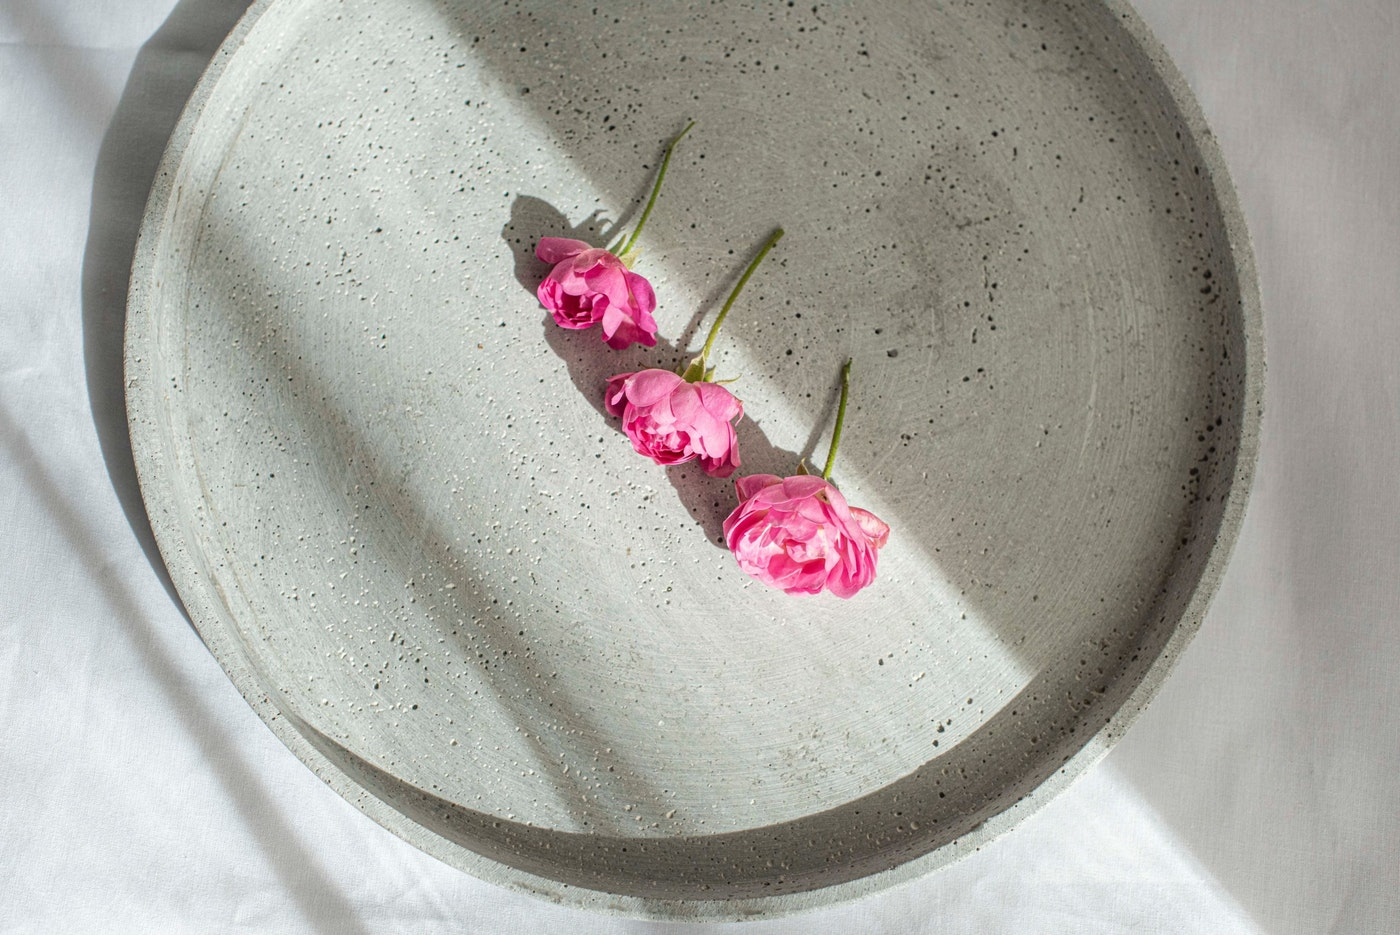 three pink roses on a plate